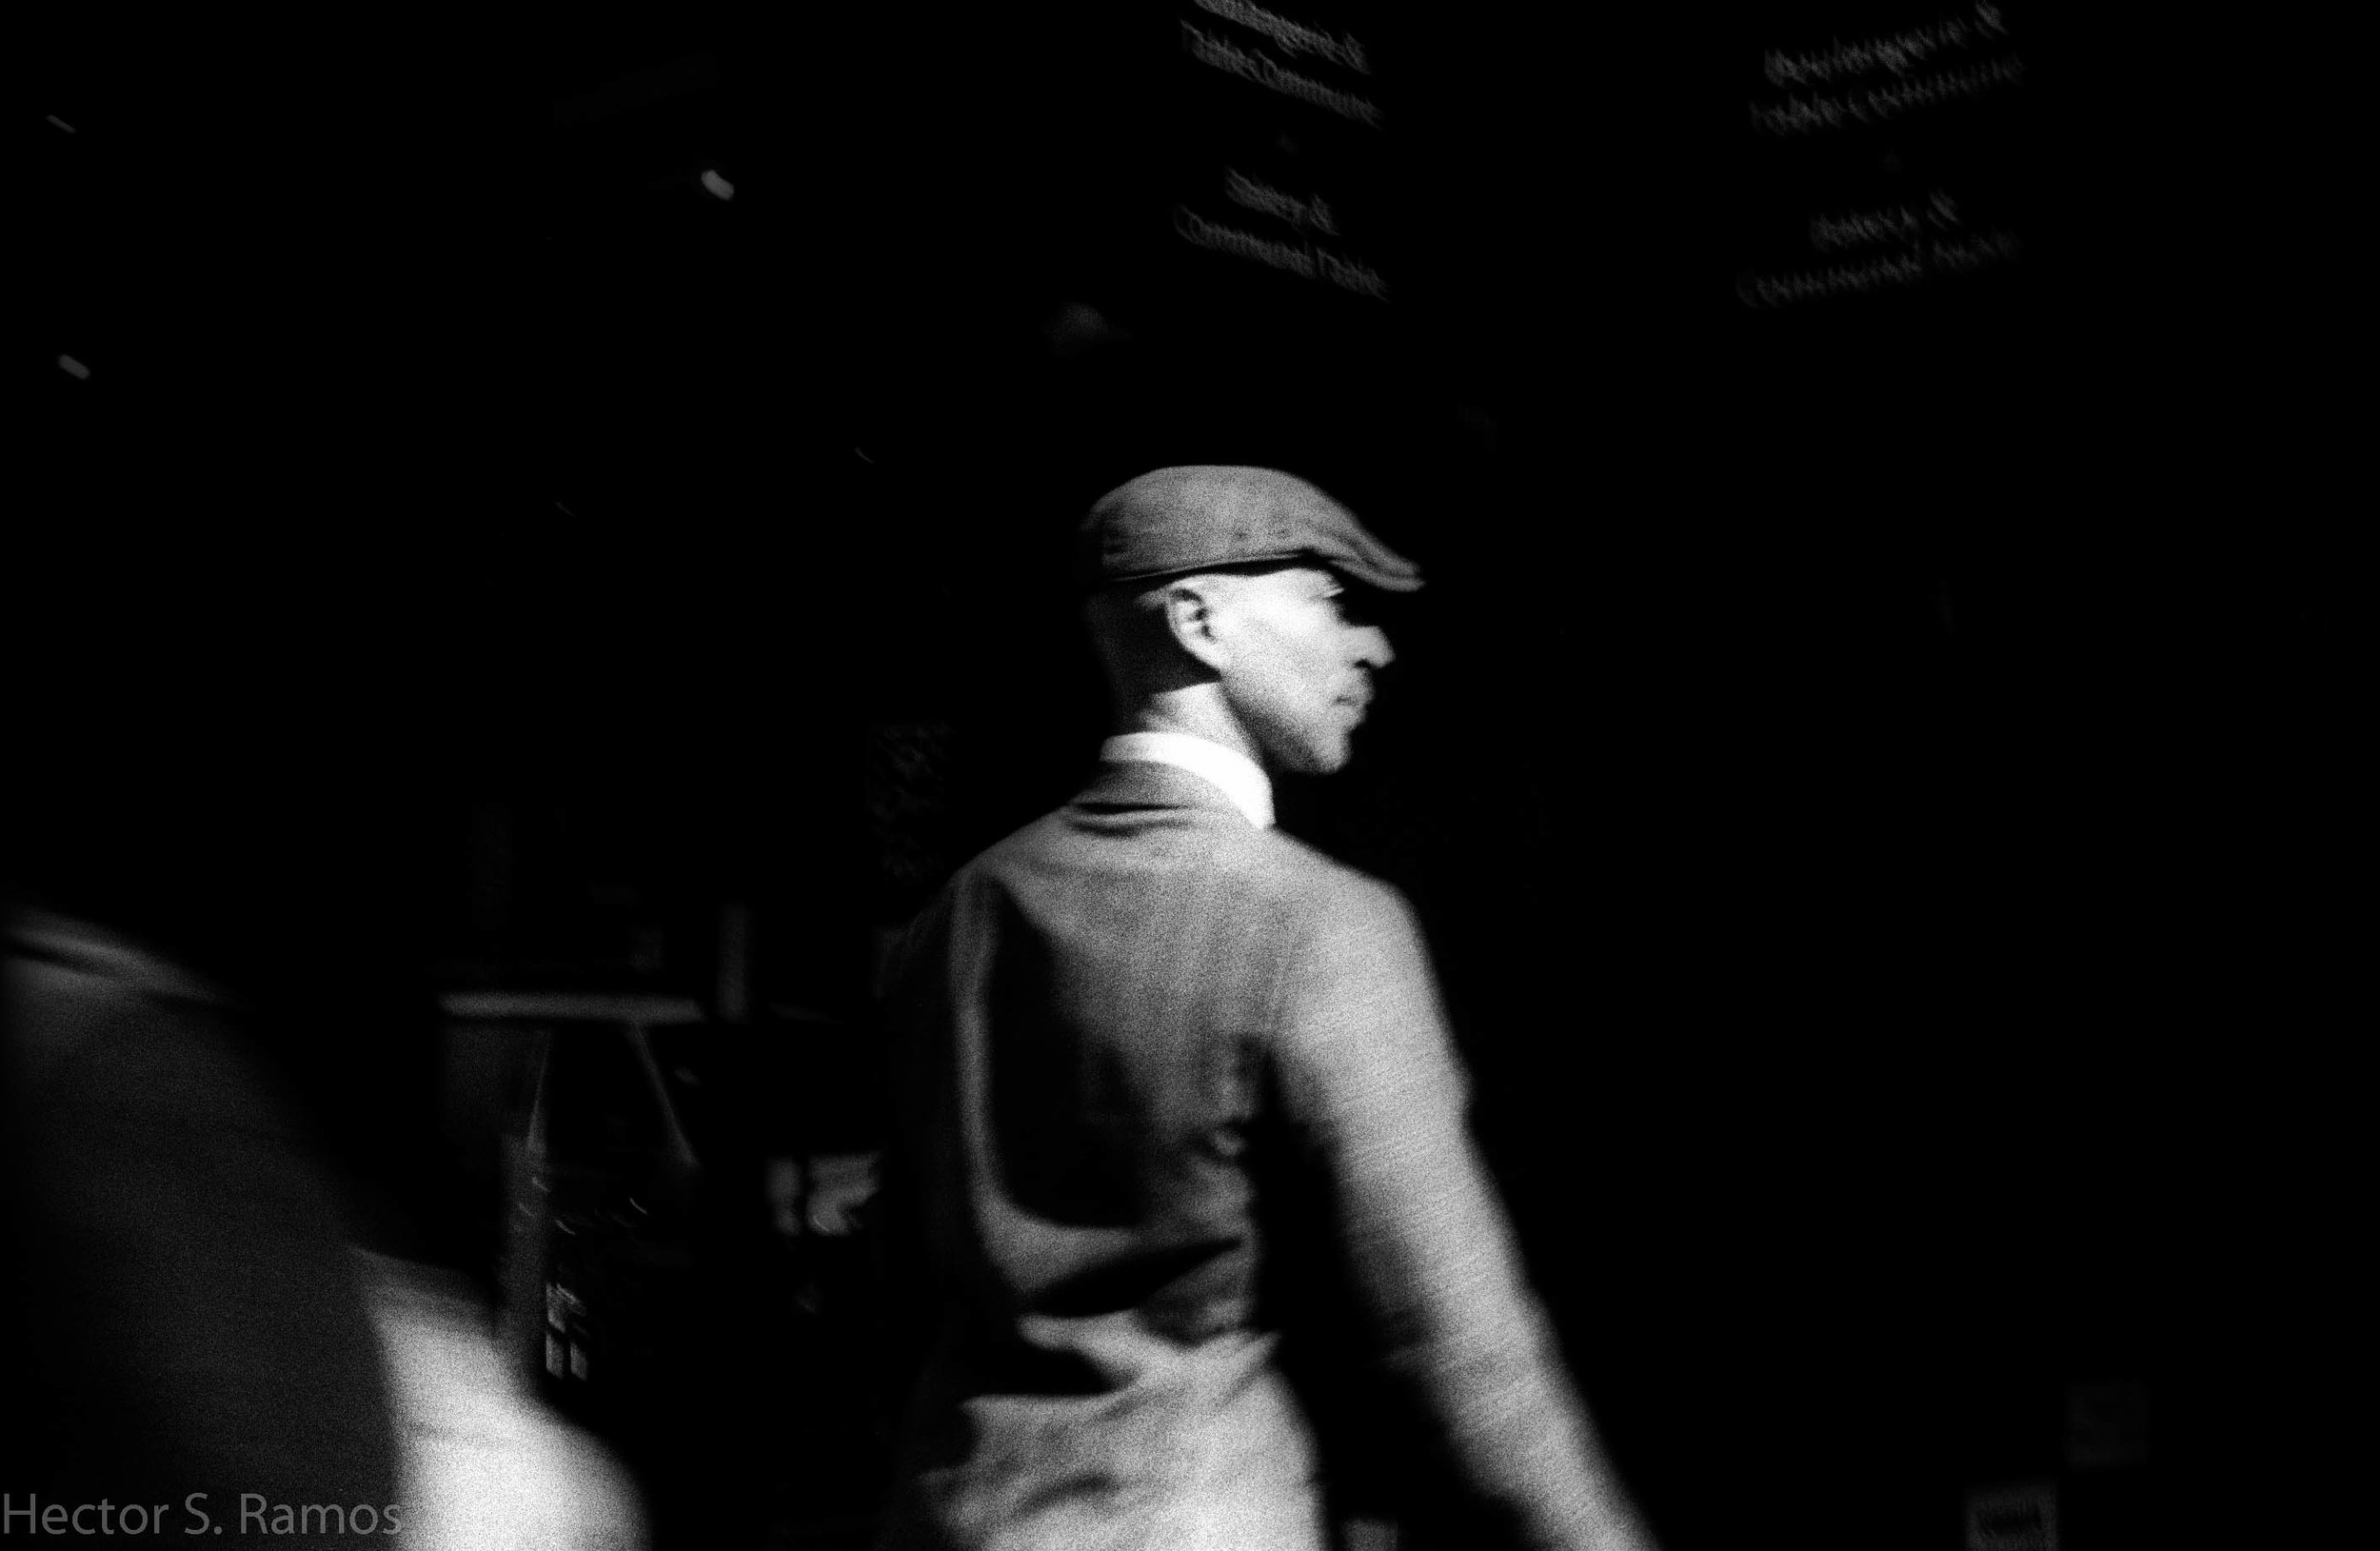 My favorite among the lot.  I glanced over my left shoulder, saw this image, instinctively lifted my camera (which was without any battery), and without any time to focus nor think of the exposure, pressed the shutter release button.  The image was gone in a second. He stepped into the sunlight passing through in between tall Manhattan buildings and into the dark shadows. I got lucky.